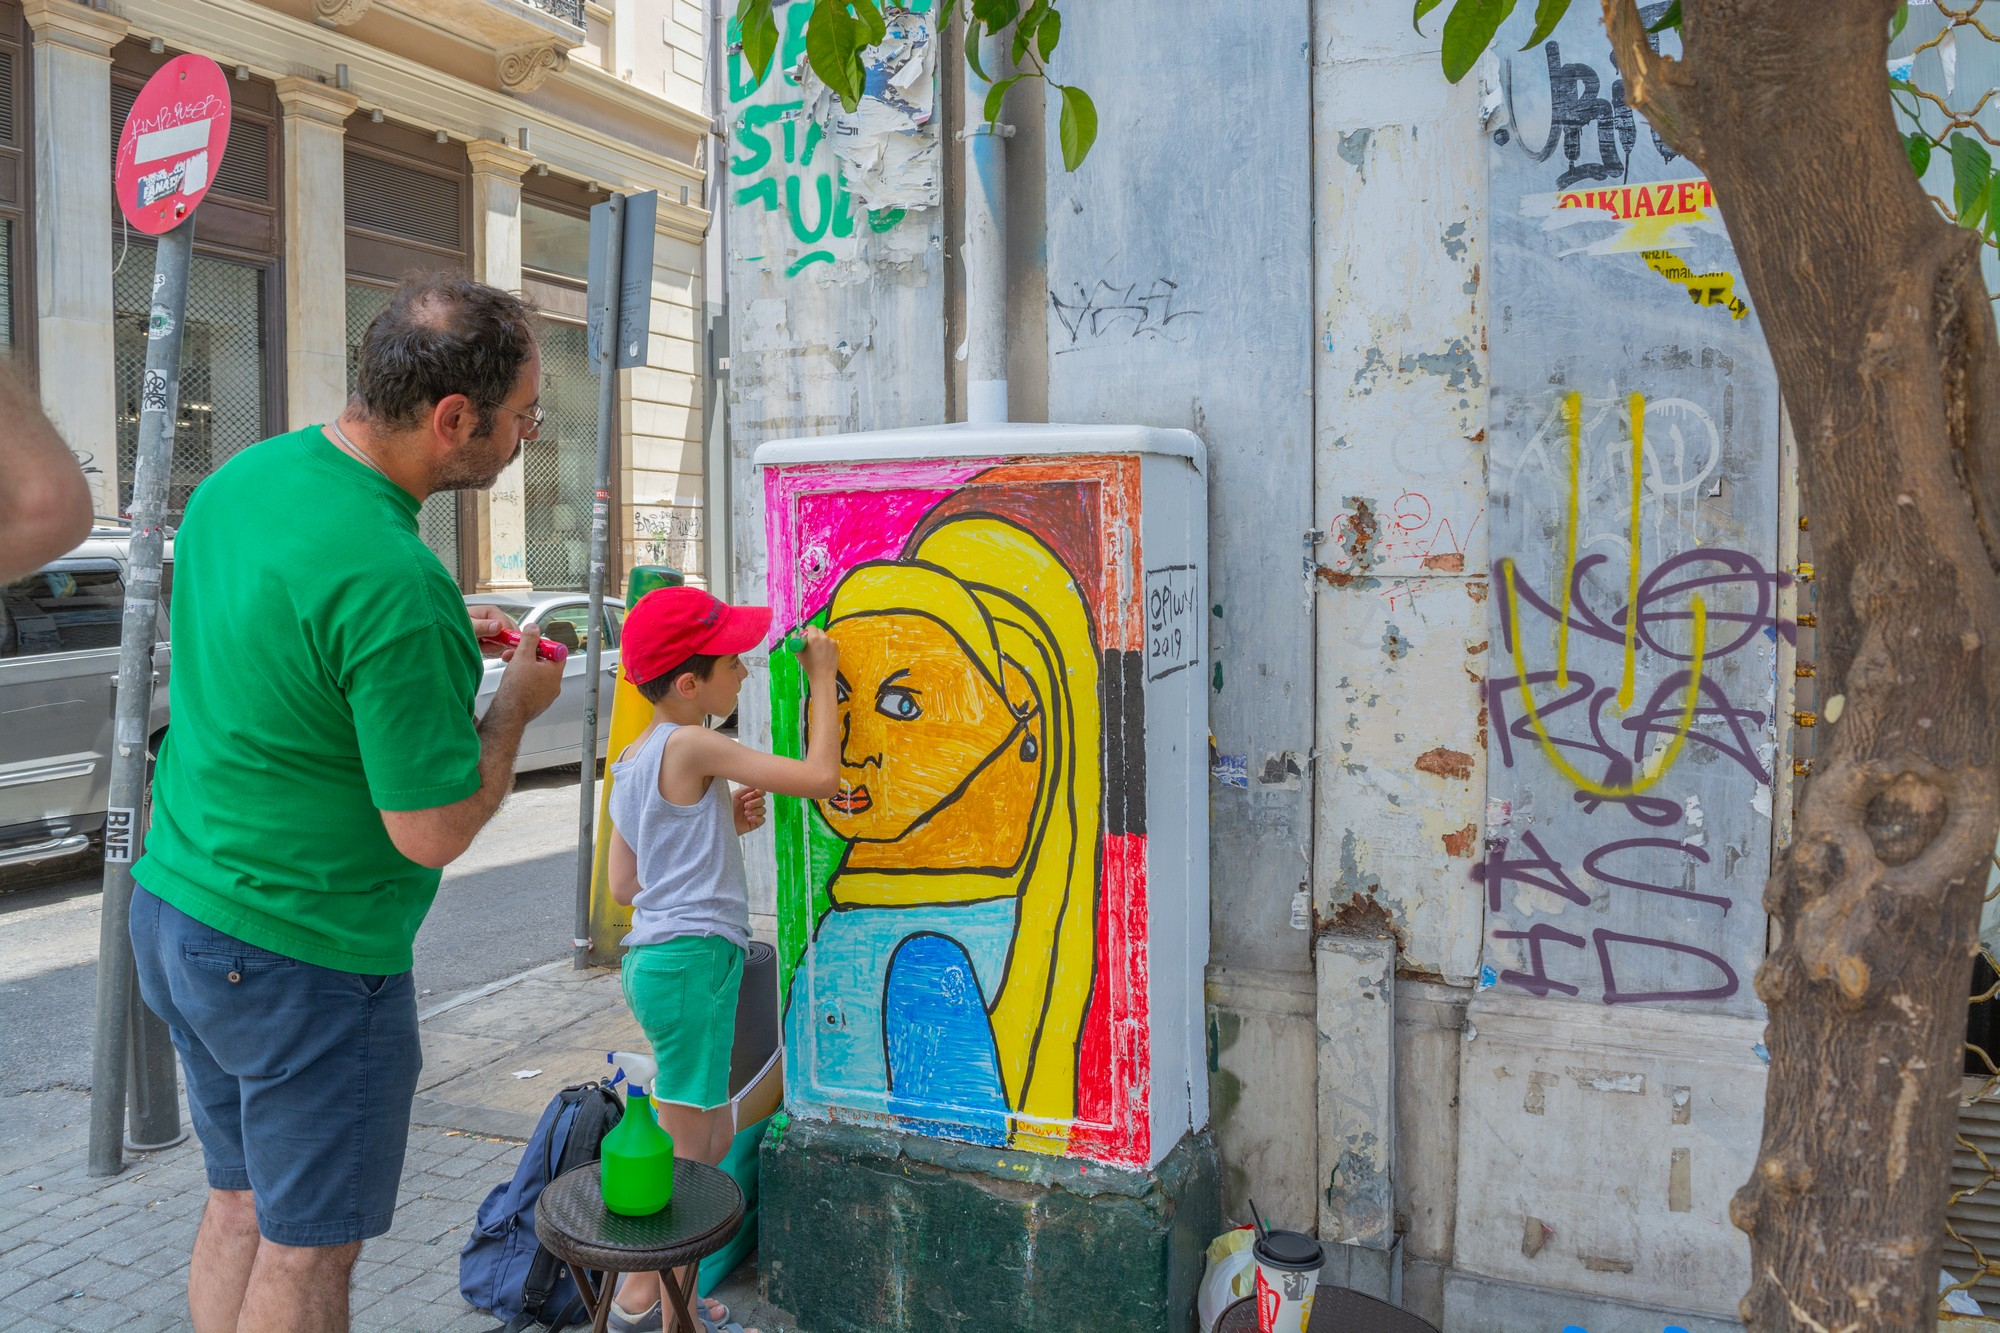 this is athens-polis - This is Athens - Polis is designed to support systematic cleaning that combats tagging, combined with a community building strategy which will lead to sustainability and change of locals' relation to the public space.